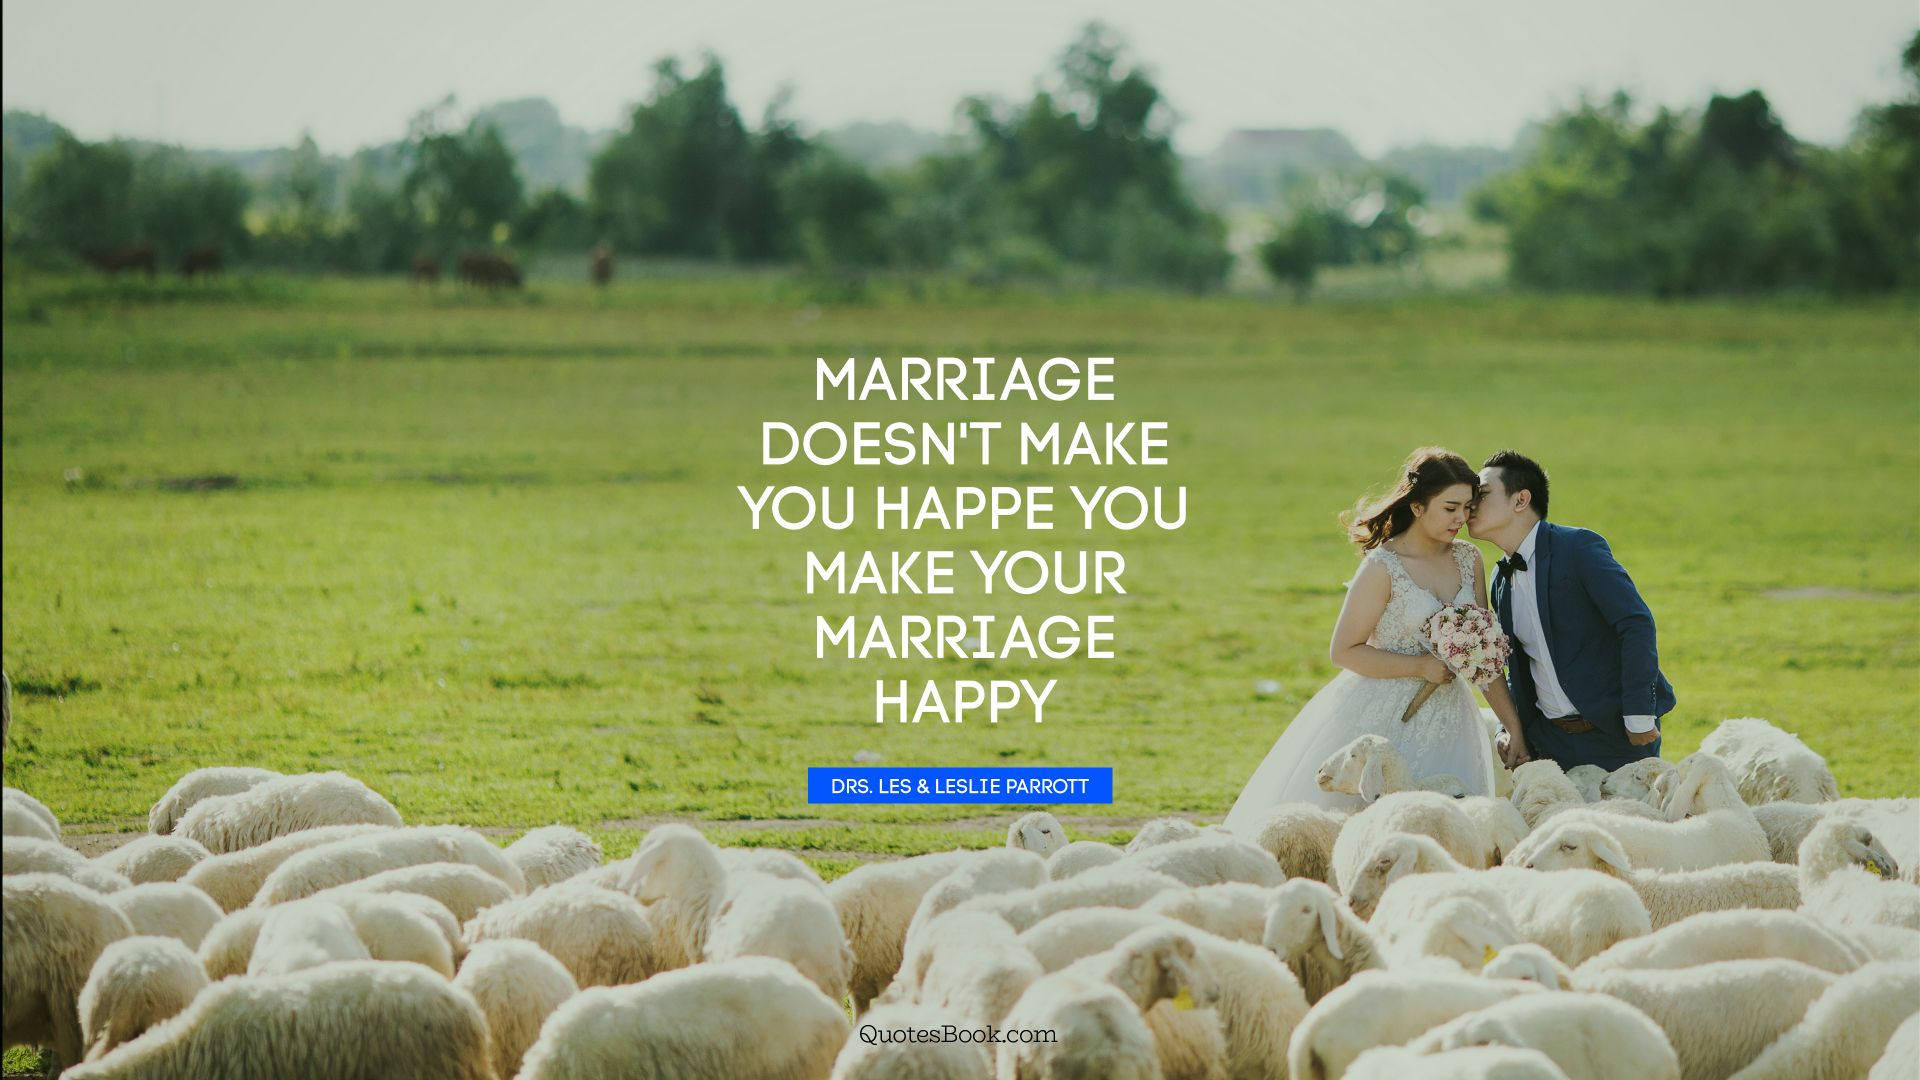 Marriage doesn't make you happe you make your marriage happy. - Quote by Drs. Les & Leslie Parrott